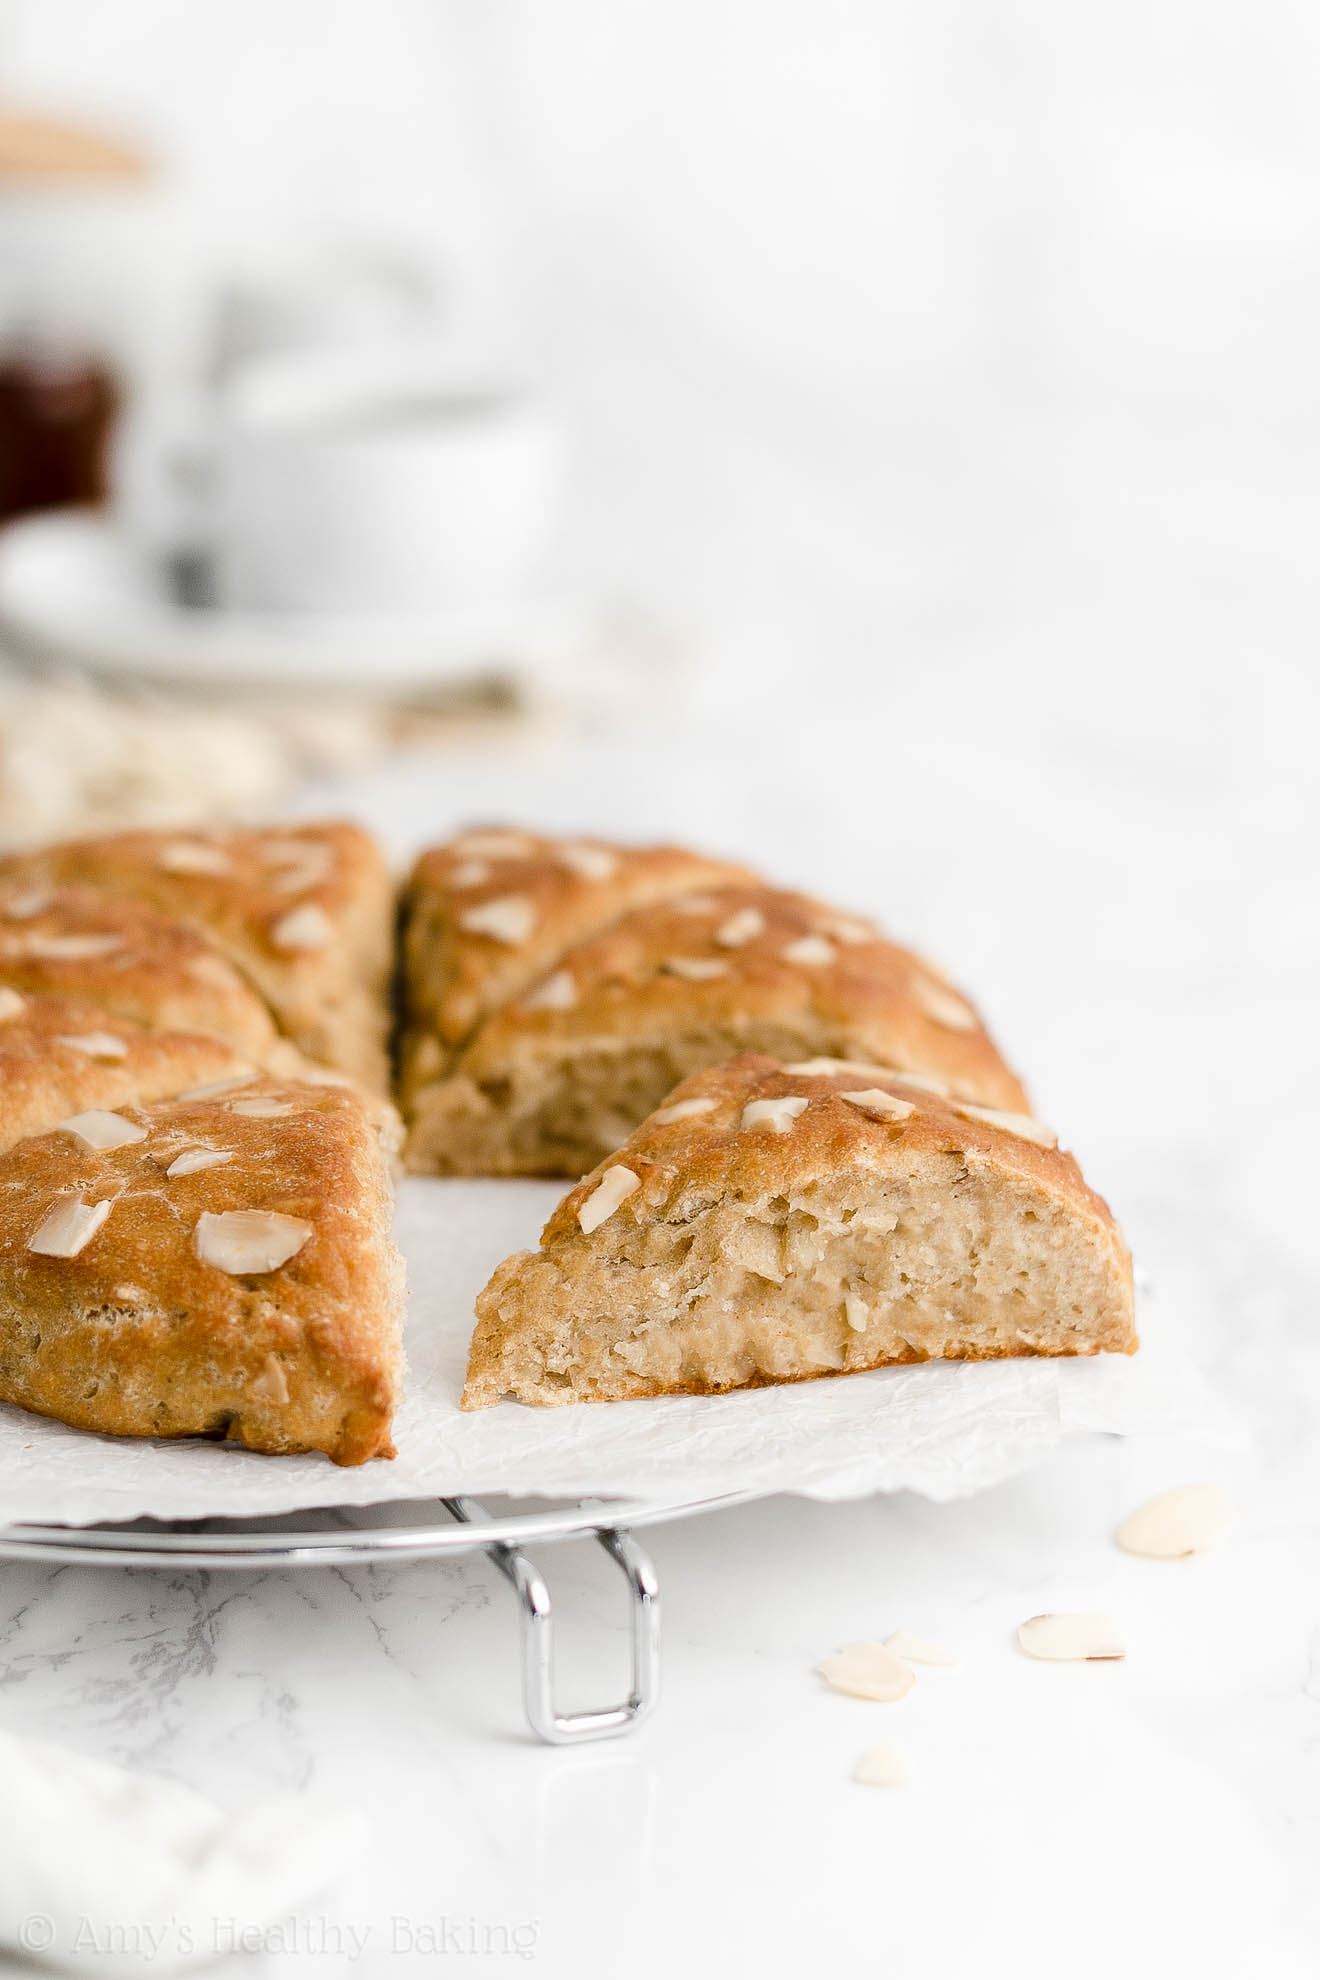 Best Easy Healthy Homemade Moist Low Fat Gluten Free Vegan Almond Scones